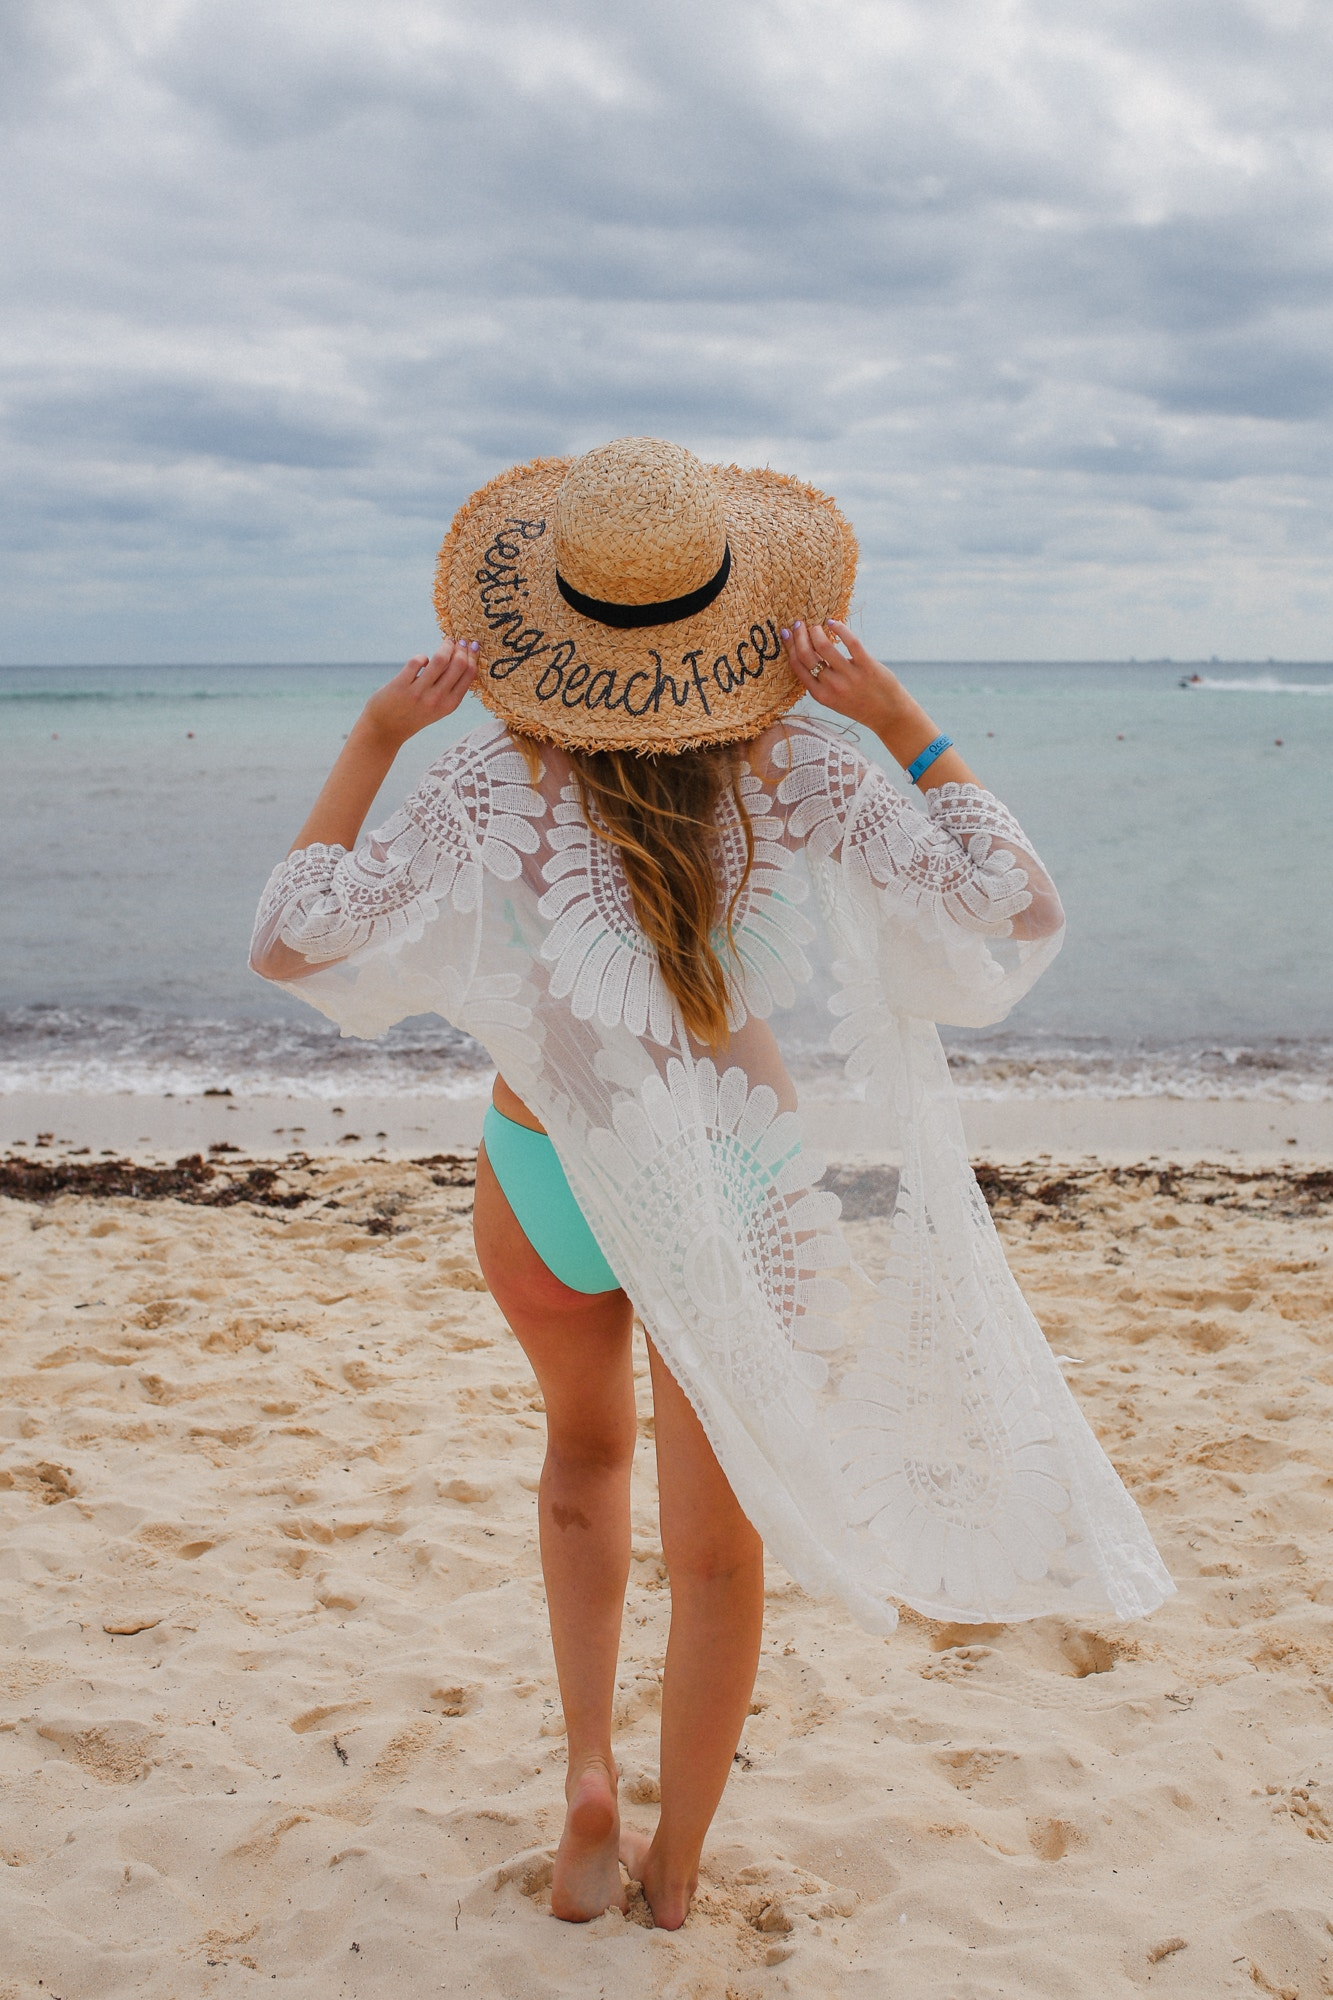 This white lace beach coverup from Amazon is a must-buy! I love how inexpensive it is and it's so chic! Also wearing a Resting Beach Face sunhat for a cheeky resort look.